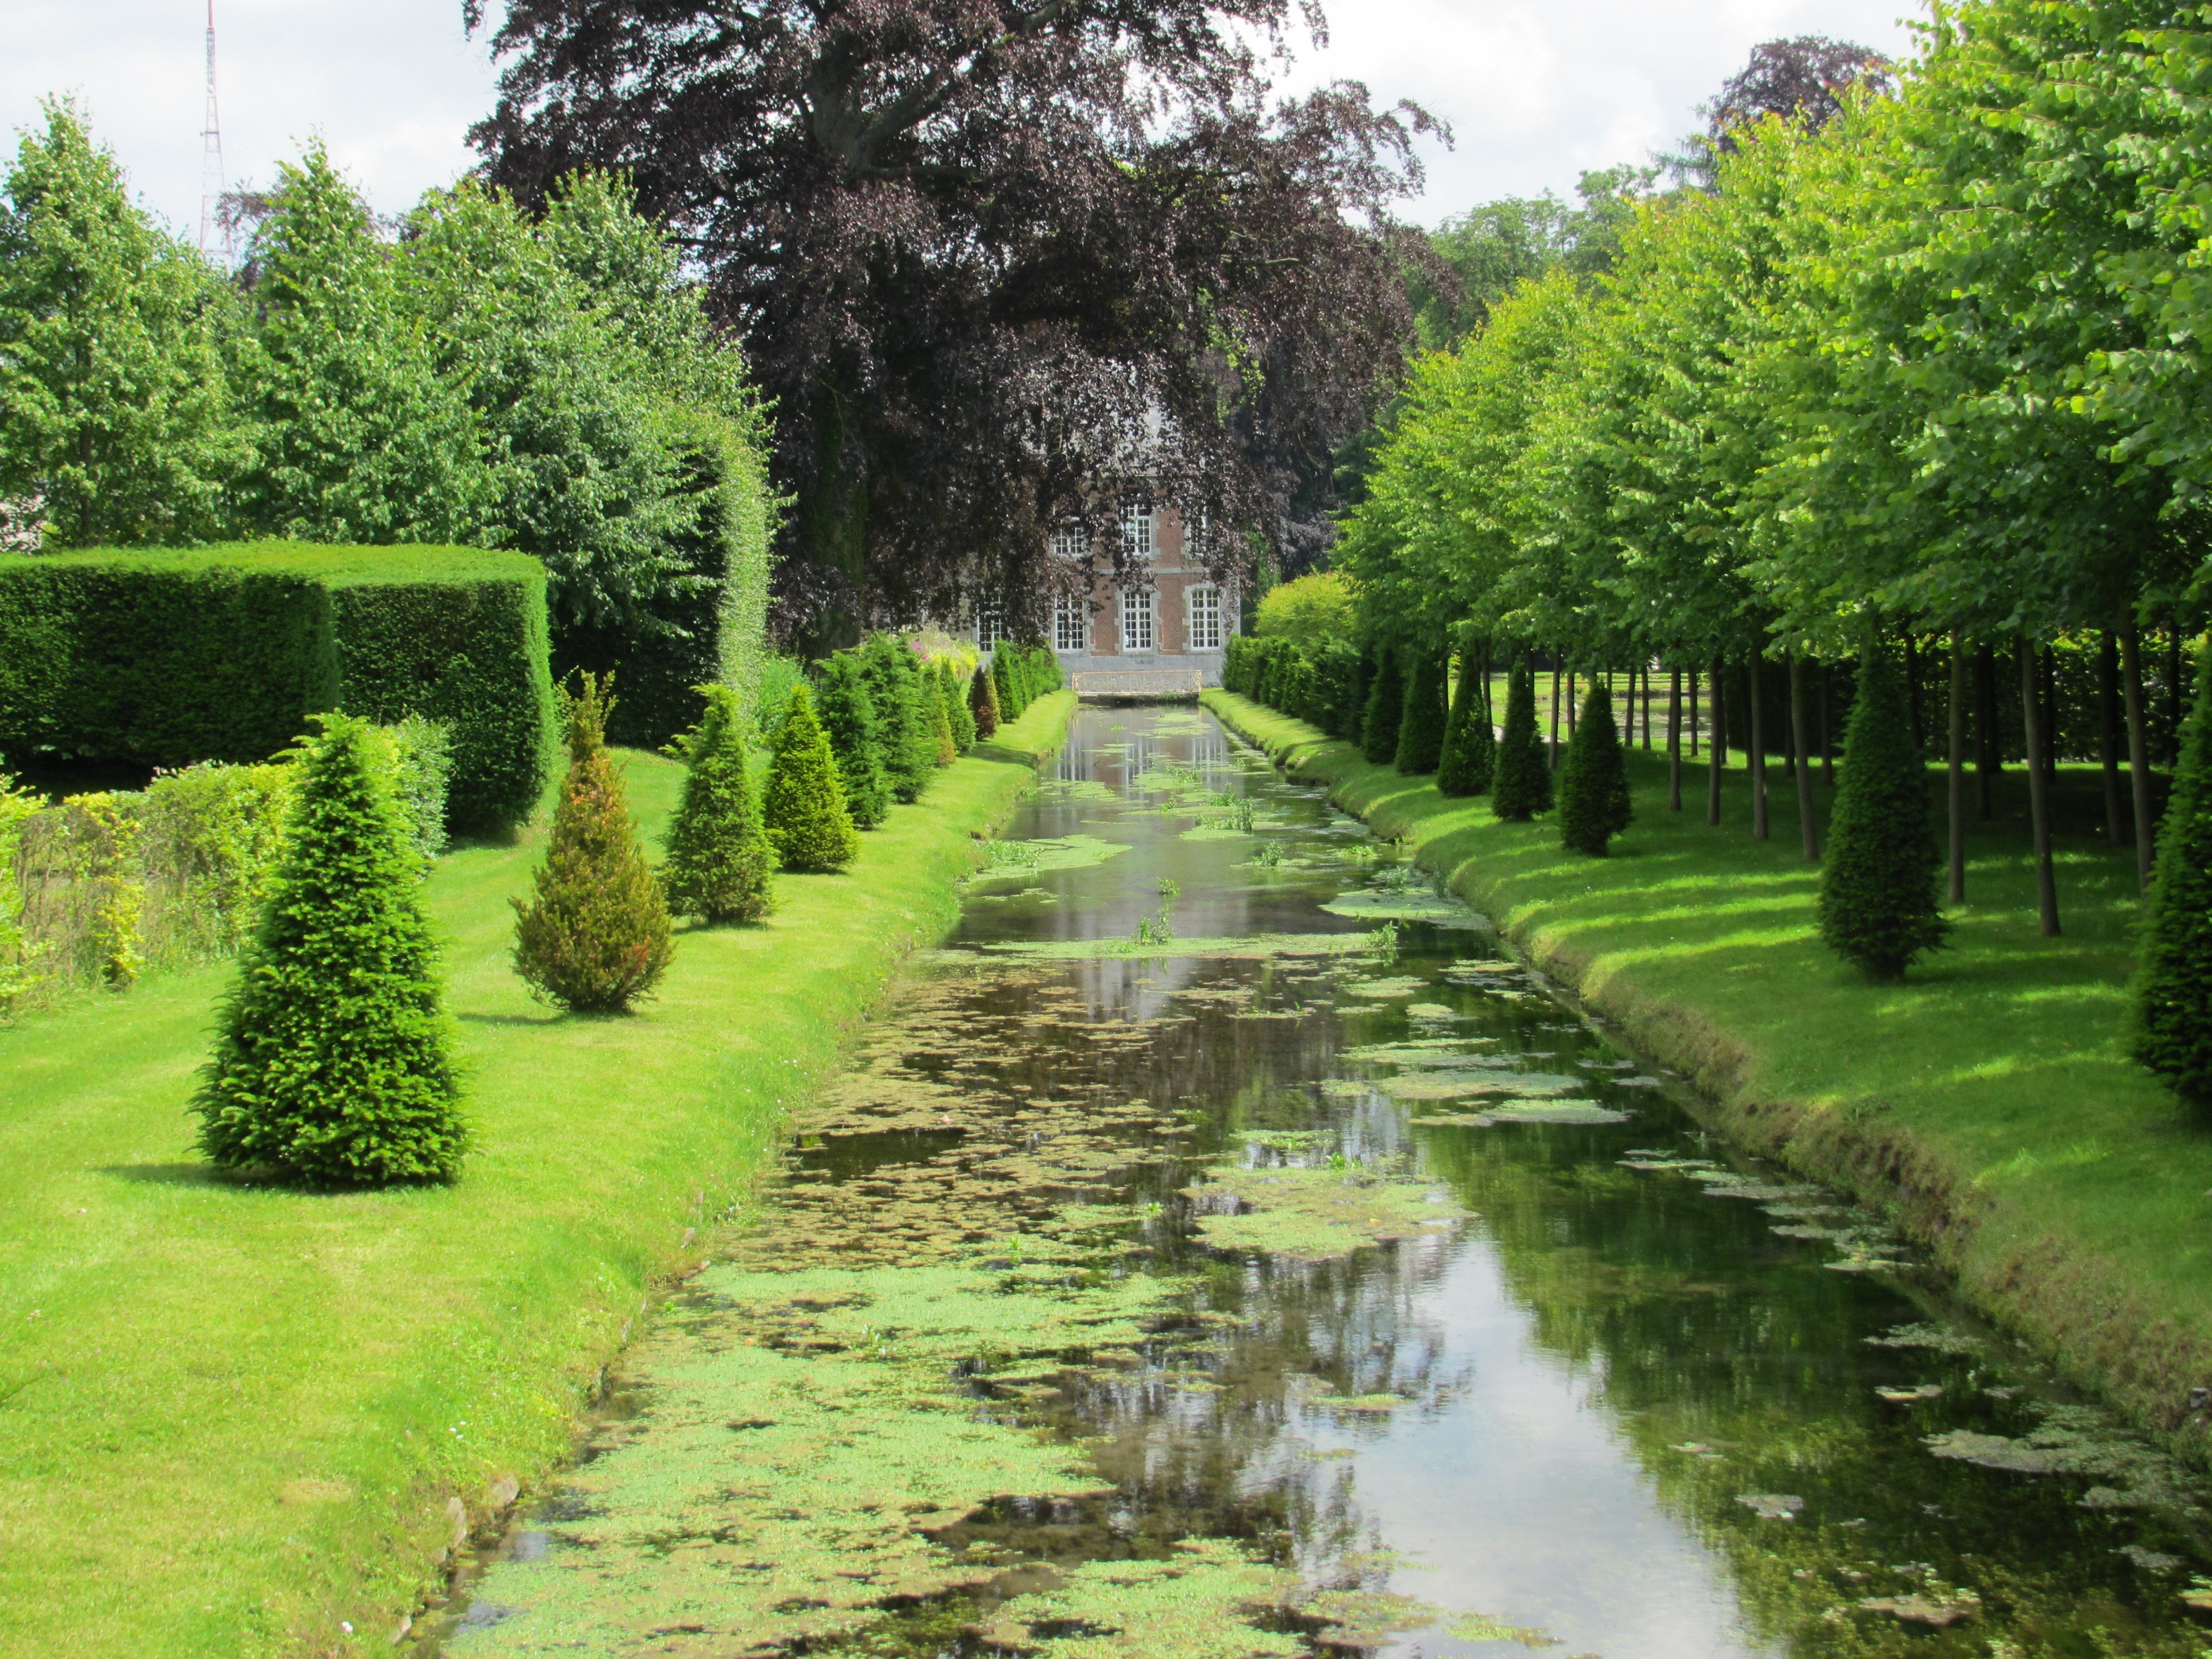 Jardins d annevoie water gardens of wallonia i do not for Jardin d annevoie 2016